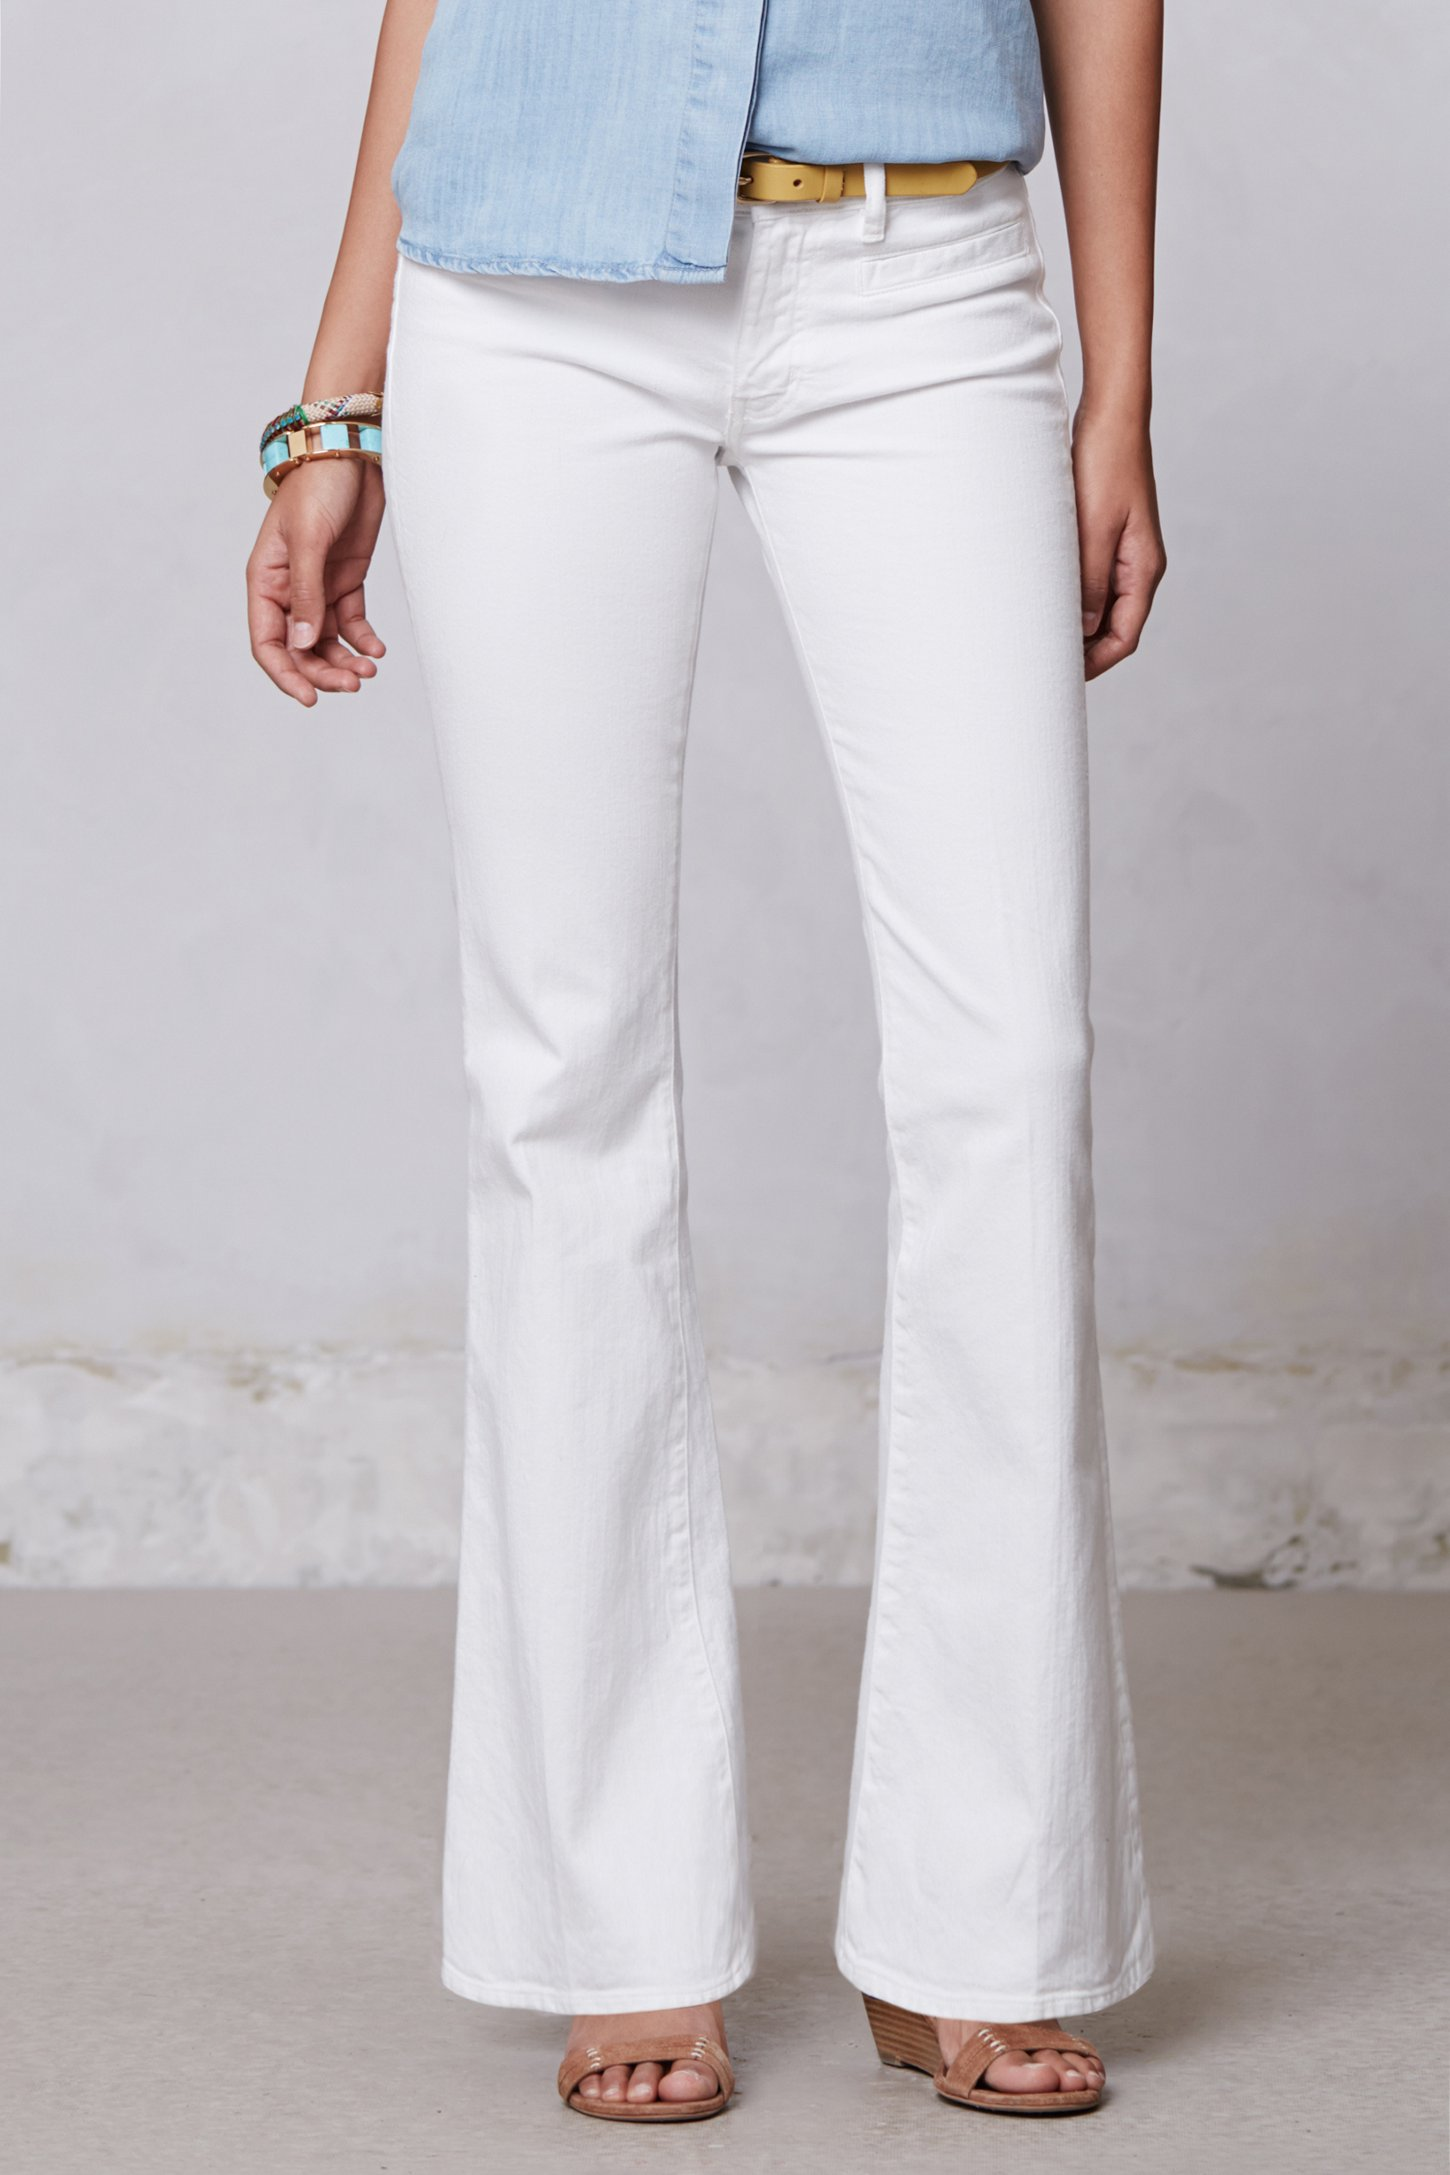 M.i.h jeans Casablanca Flare Petite Jeans in White | Lyst